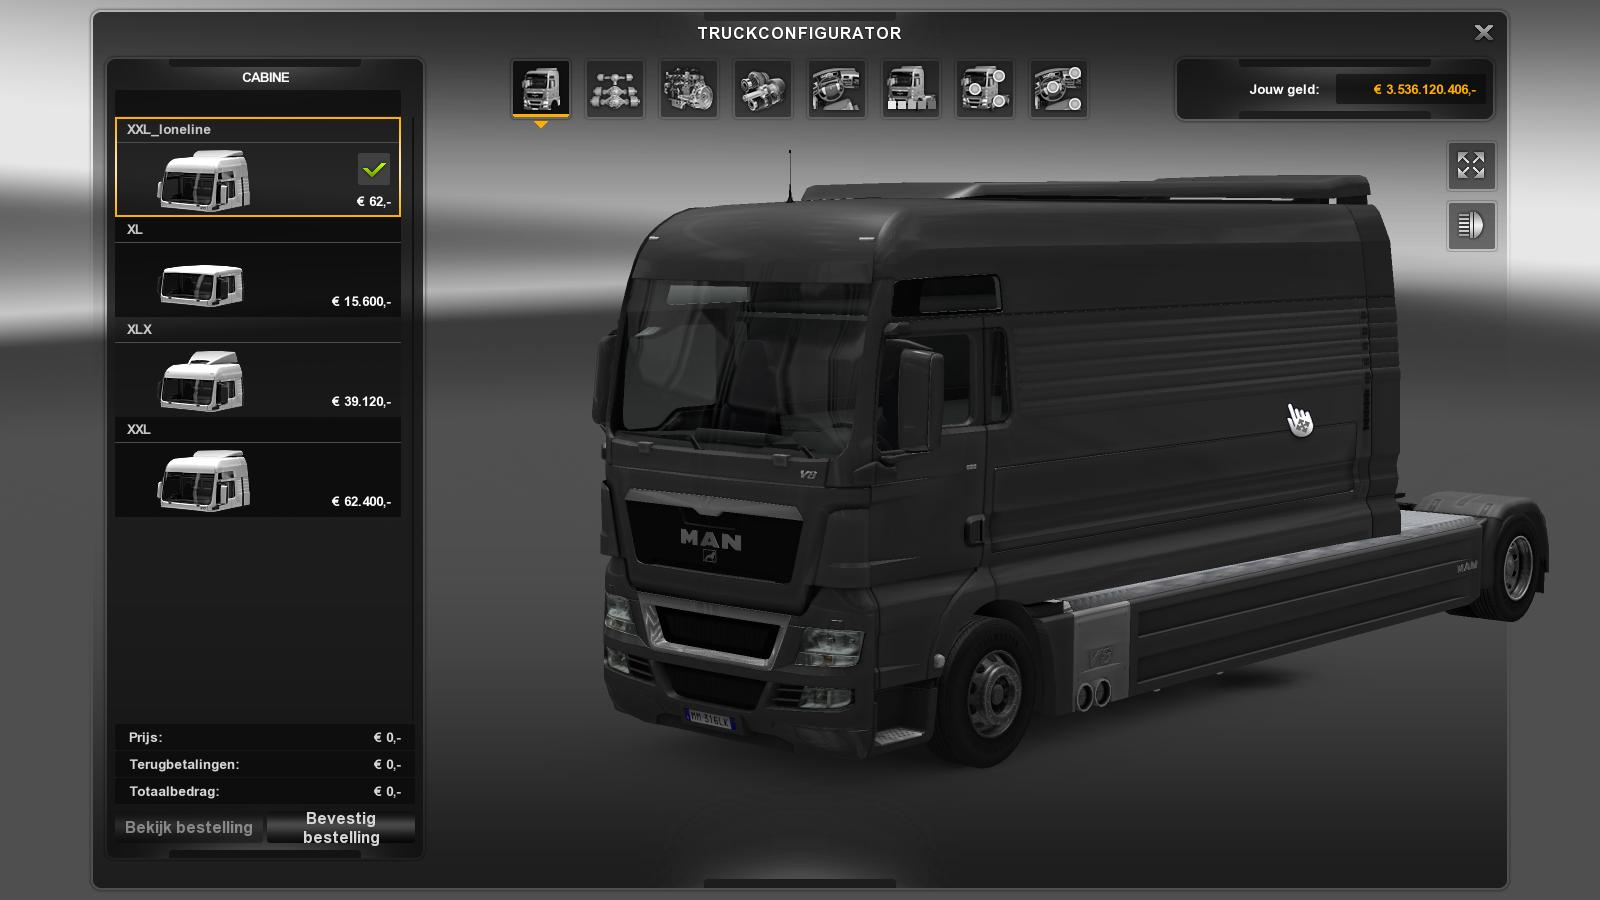 MAN LONELINE SMALL UPDATED INTERIOR Truck -Euro Truck Simulator 2 Mods